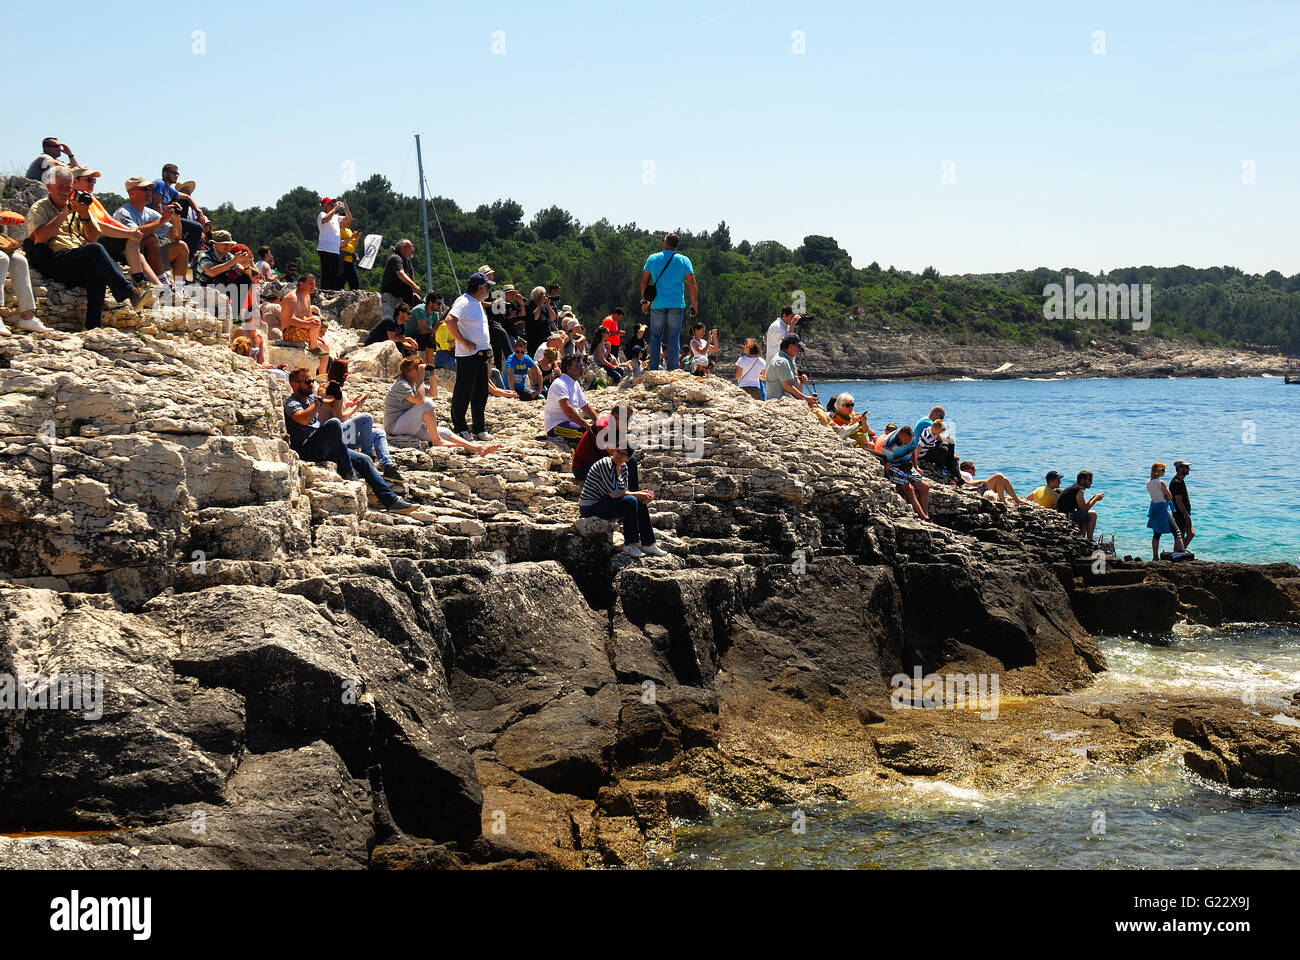 Premantura, Croatia, May 22nd, 2016. hundreds of people attend today's unusual event from the sea-shore. the - Stock Image